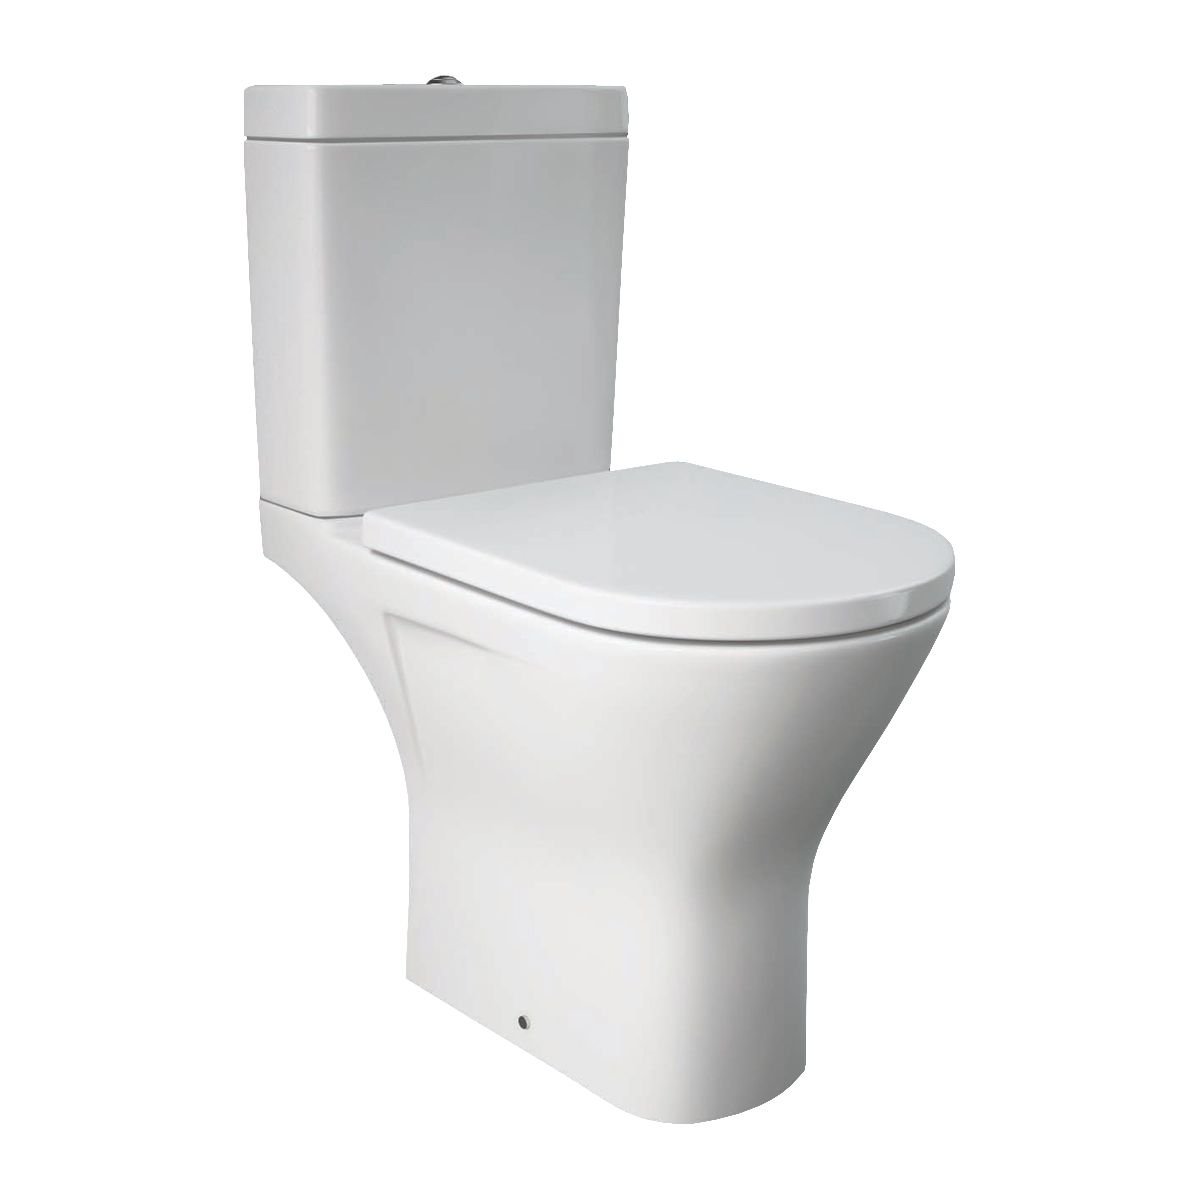 RAK Resort Mini Full Access Close Coupled Rimless Toilet